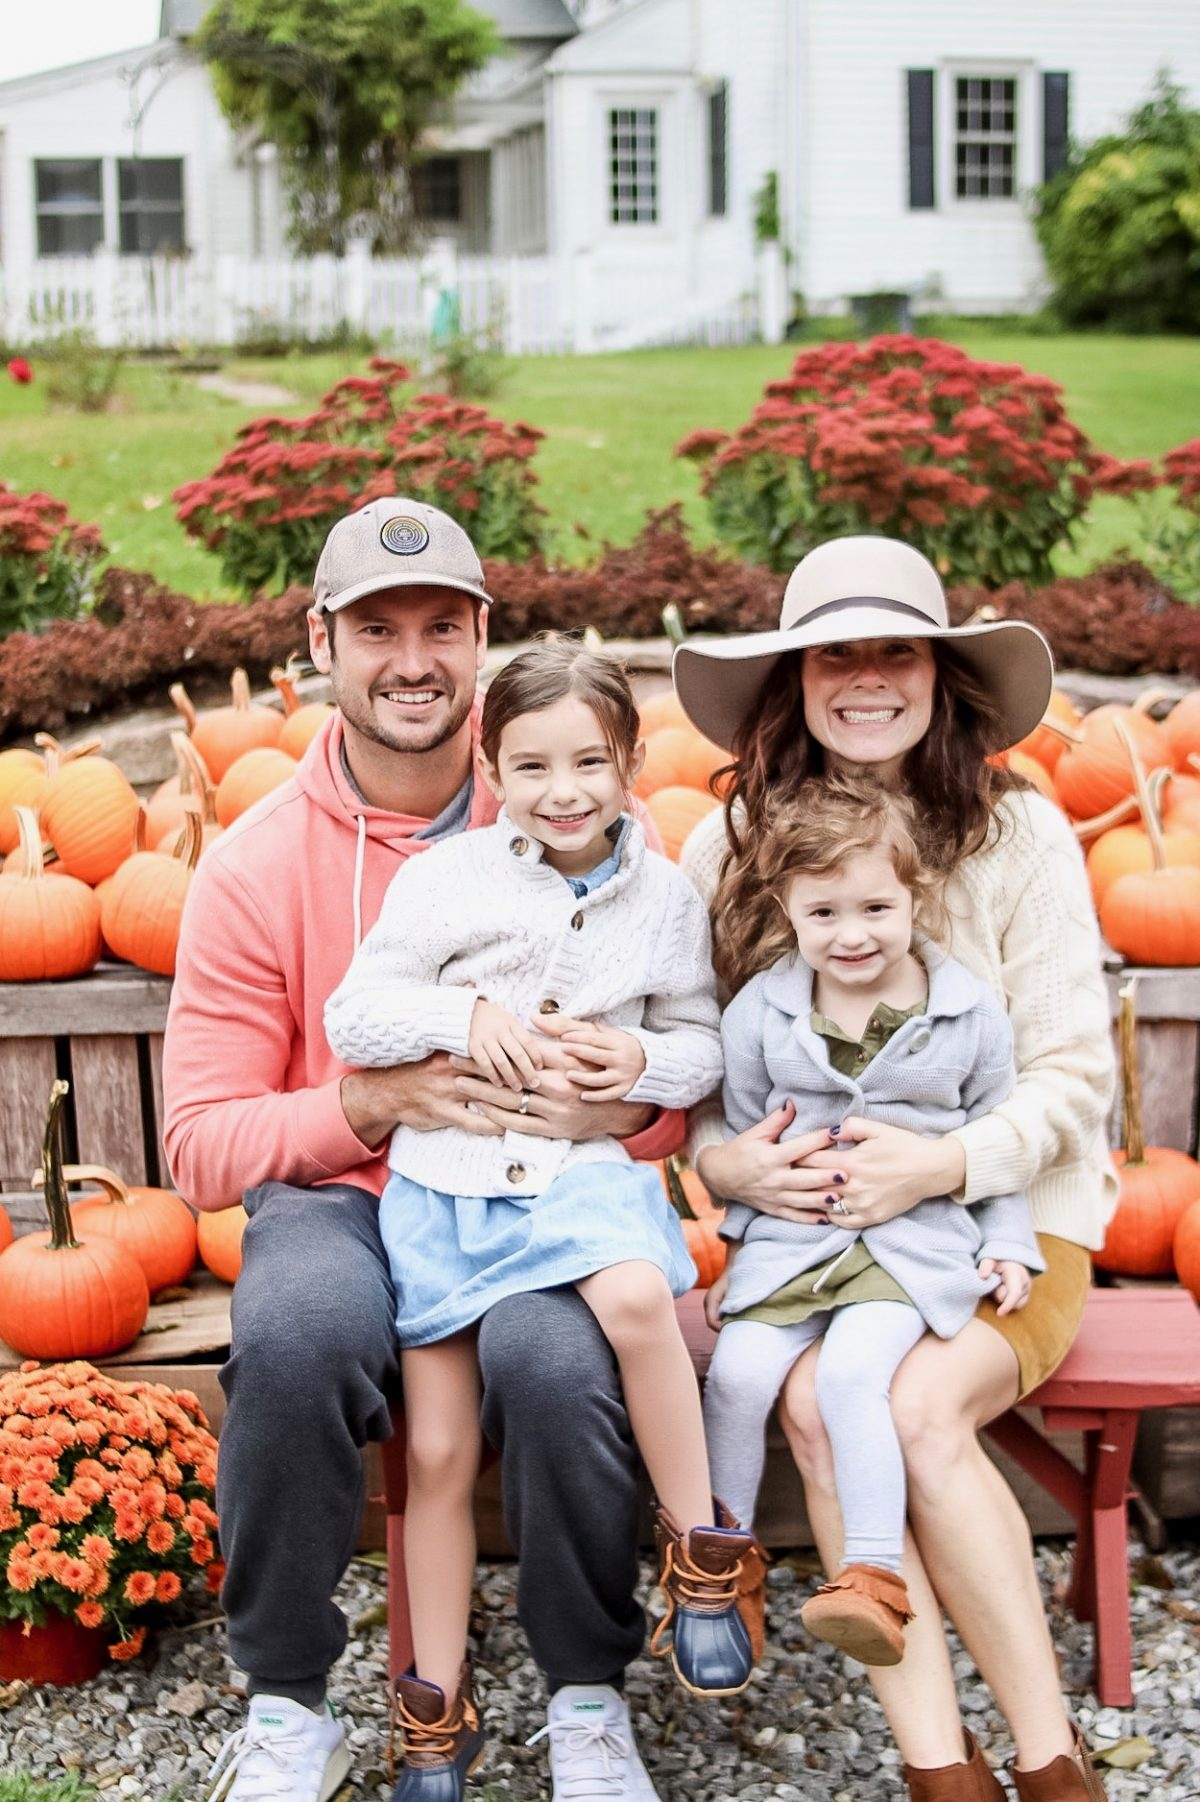 Pumpkin Picking at Drazen Orchards in Cheshire Connecticut - Weekend Recap on Caitlin Houston Blog